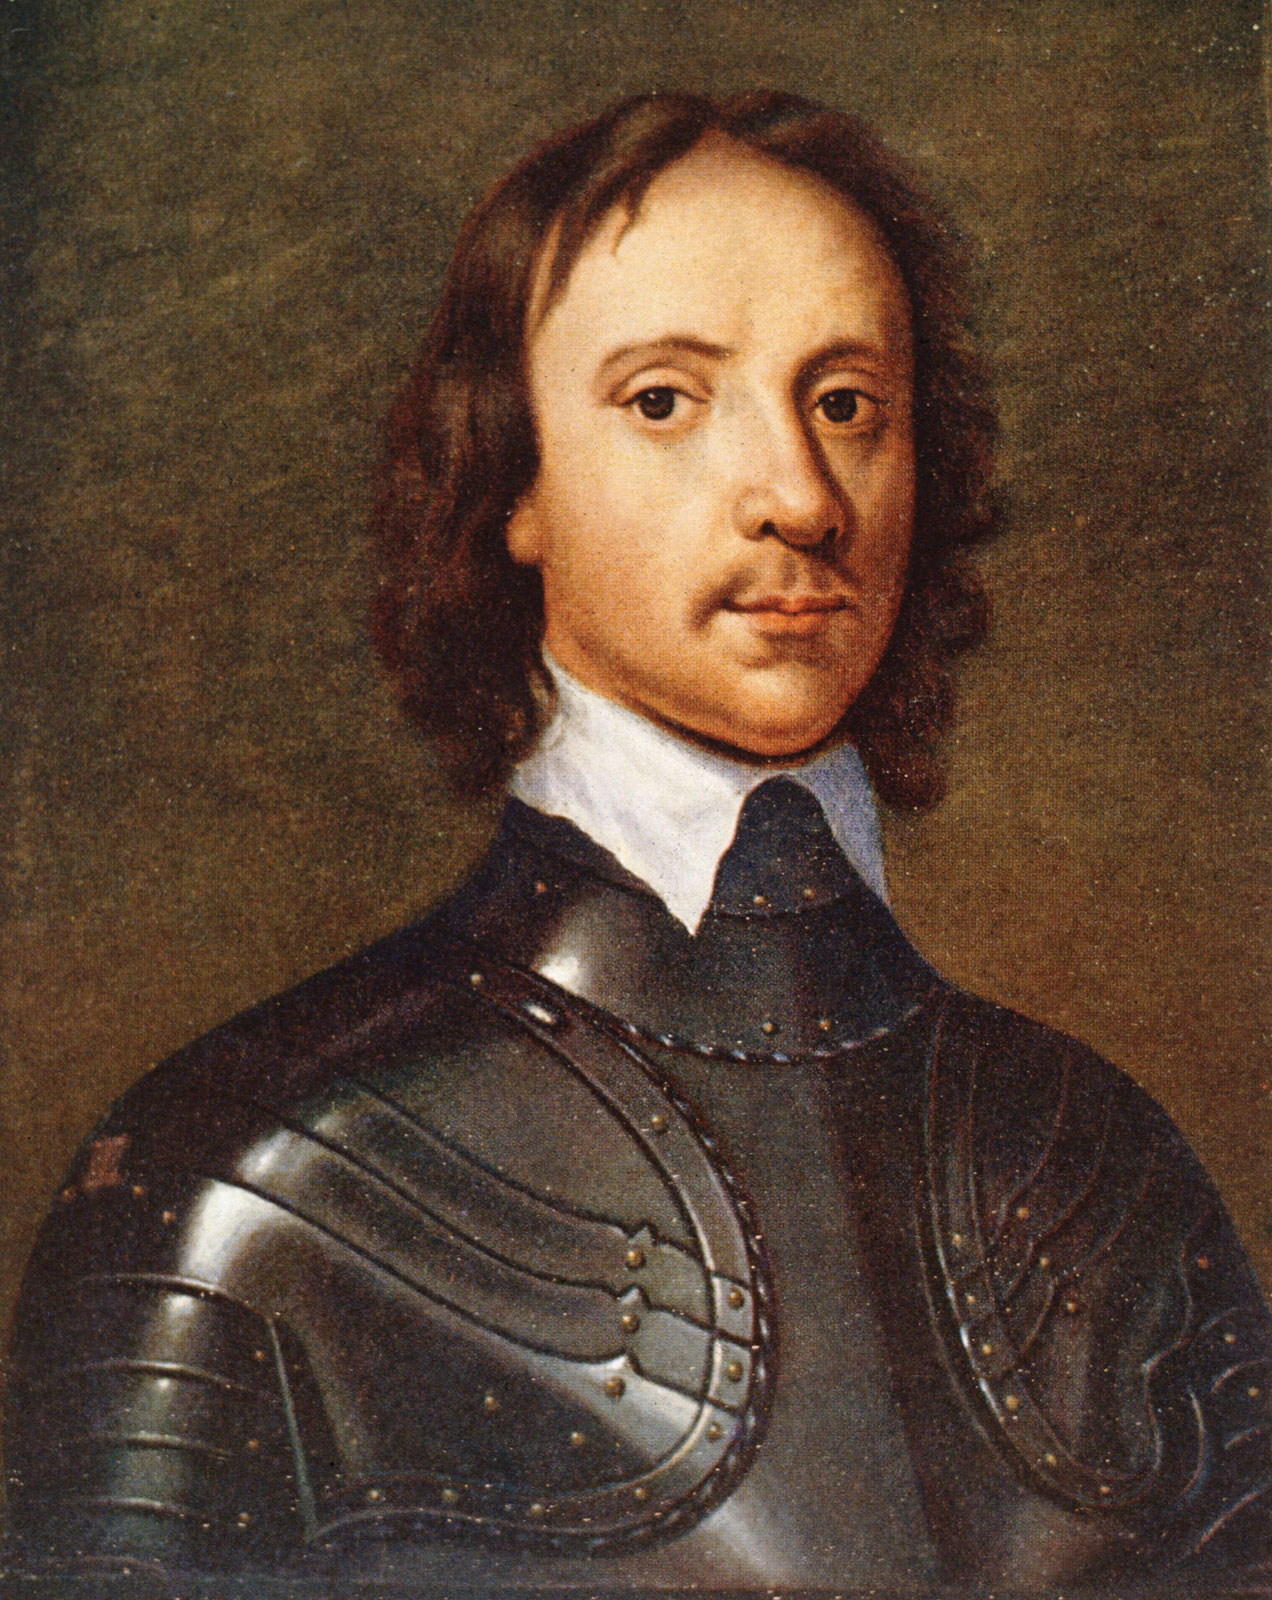 Oliver Cromwell Quotes. QuotesGram